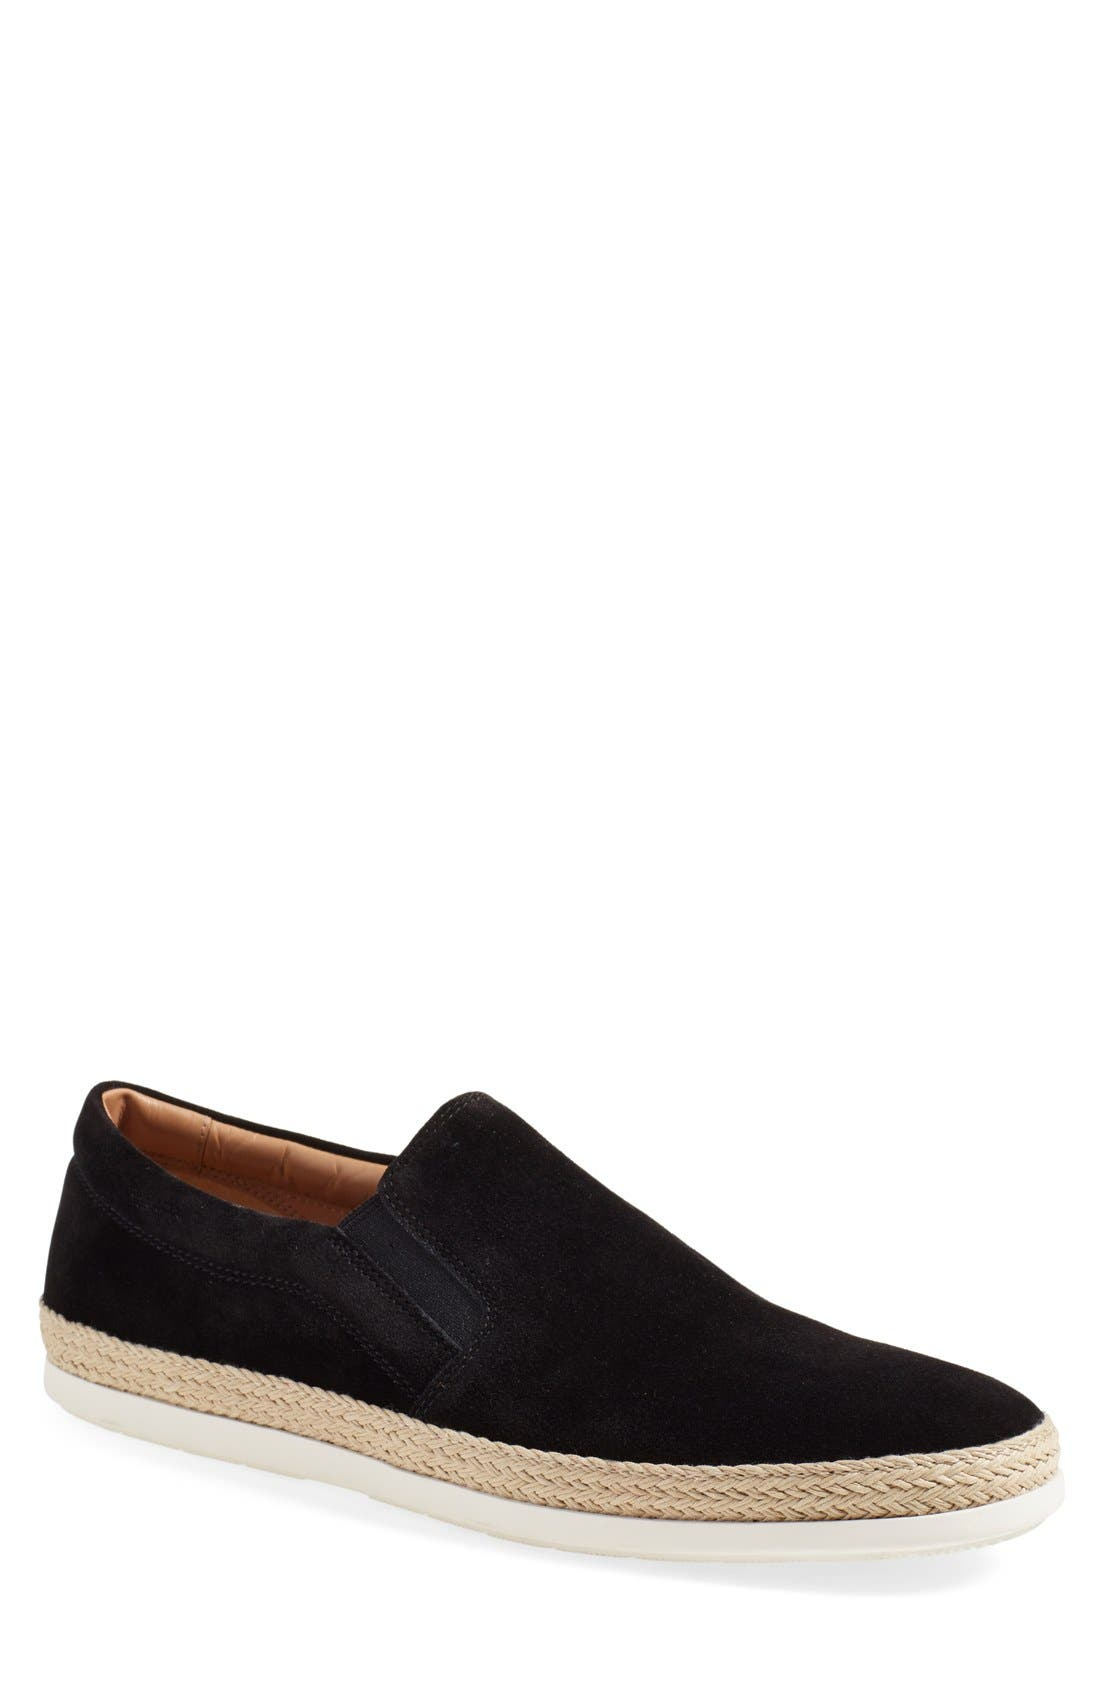 'Chance' Slip-On, Main, color, 003